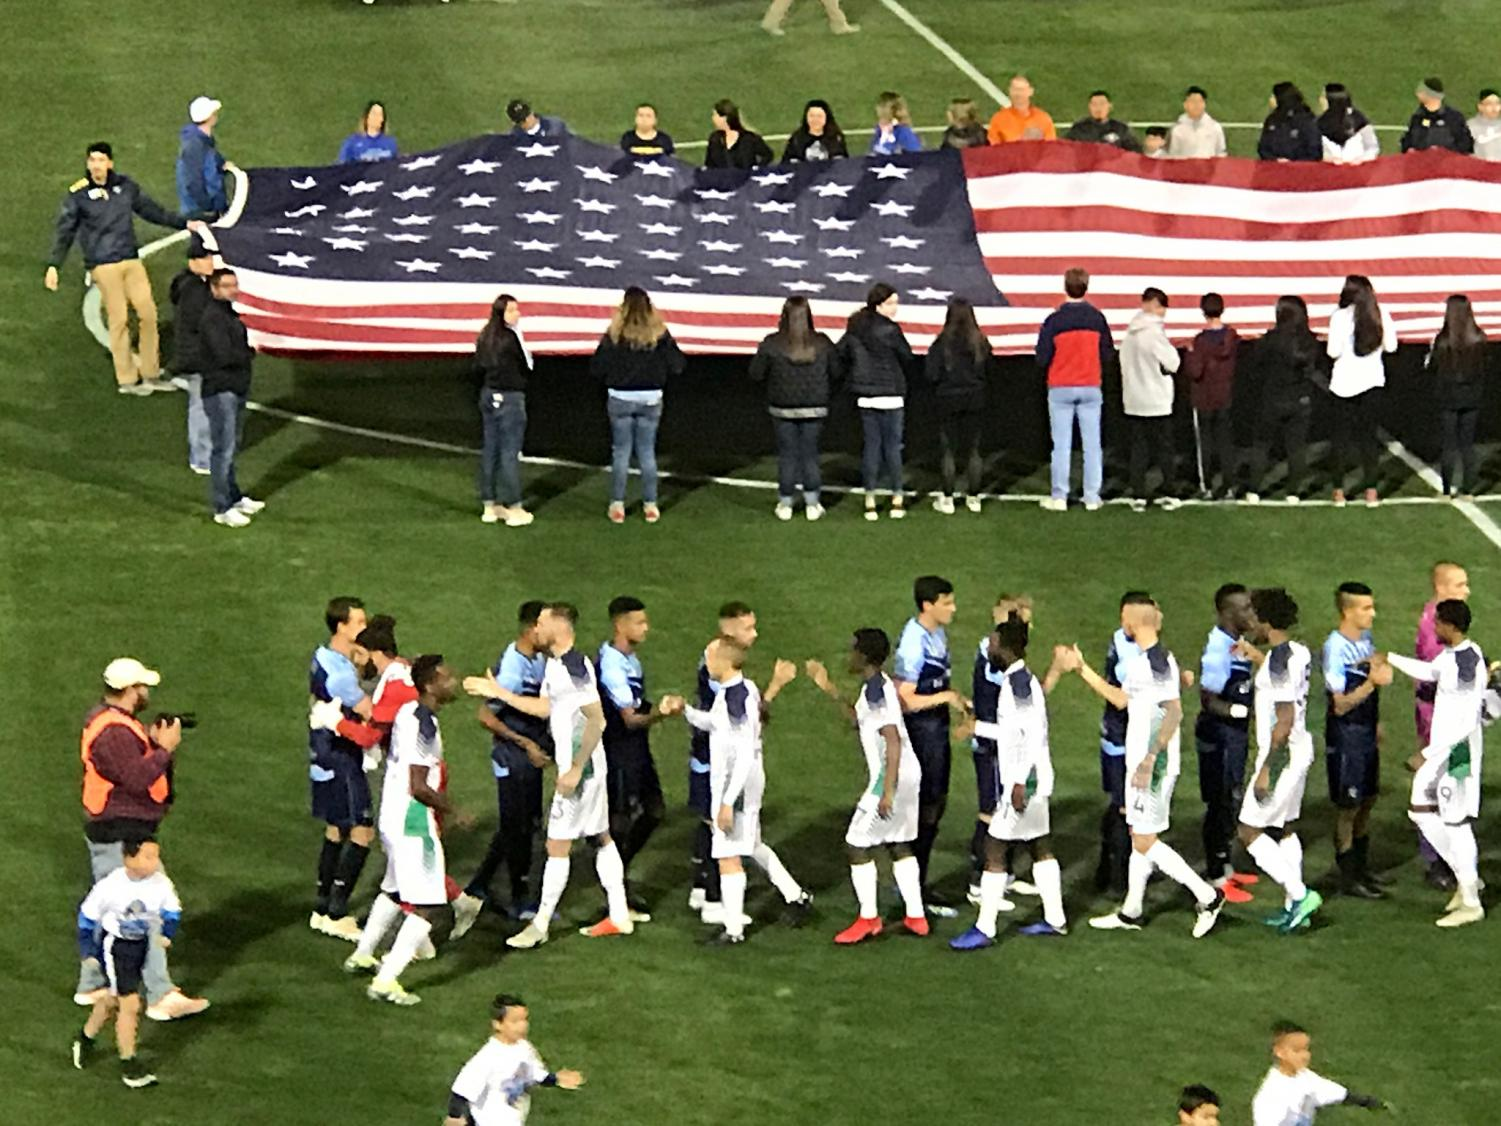 Locomotive+FC+and+OKC+Energy+FC+shake+hands+before+the+match+begins.+